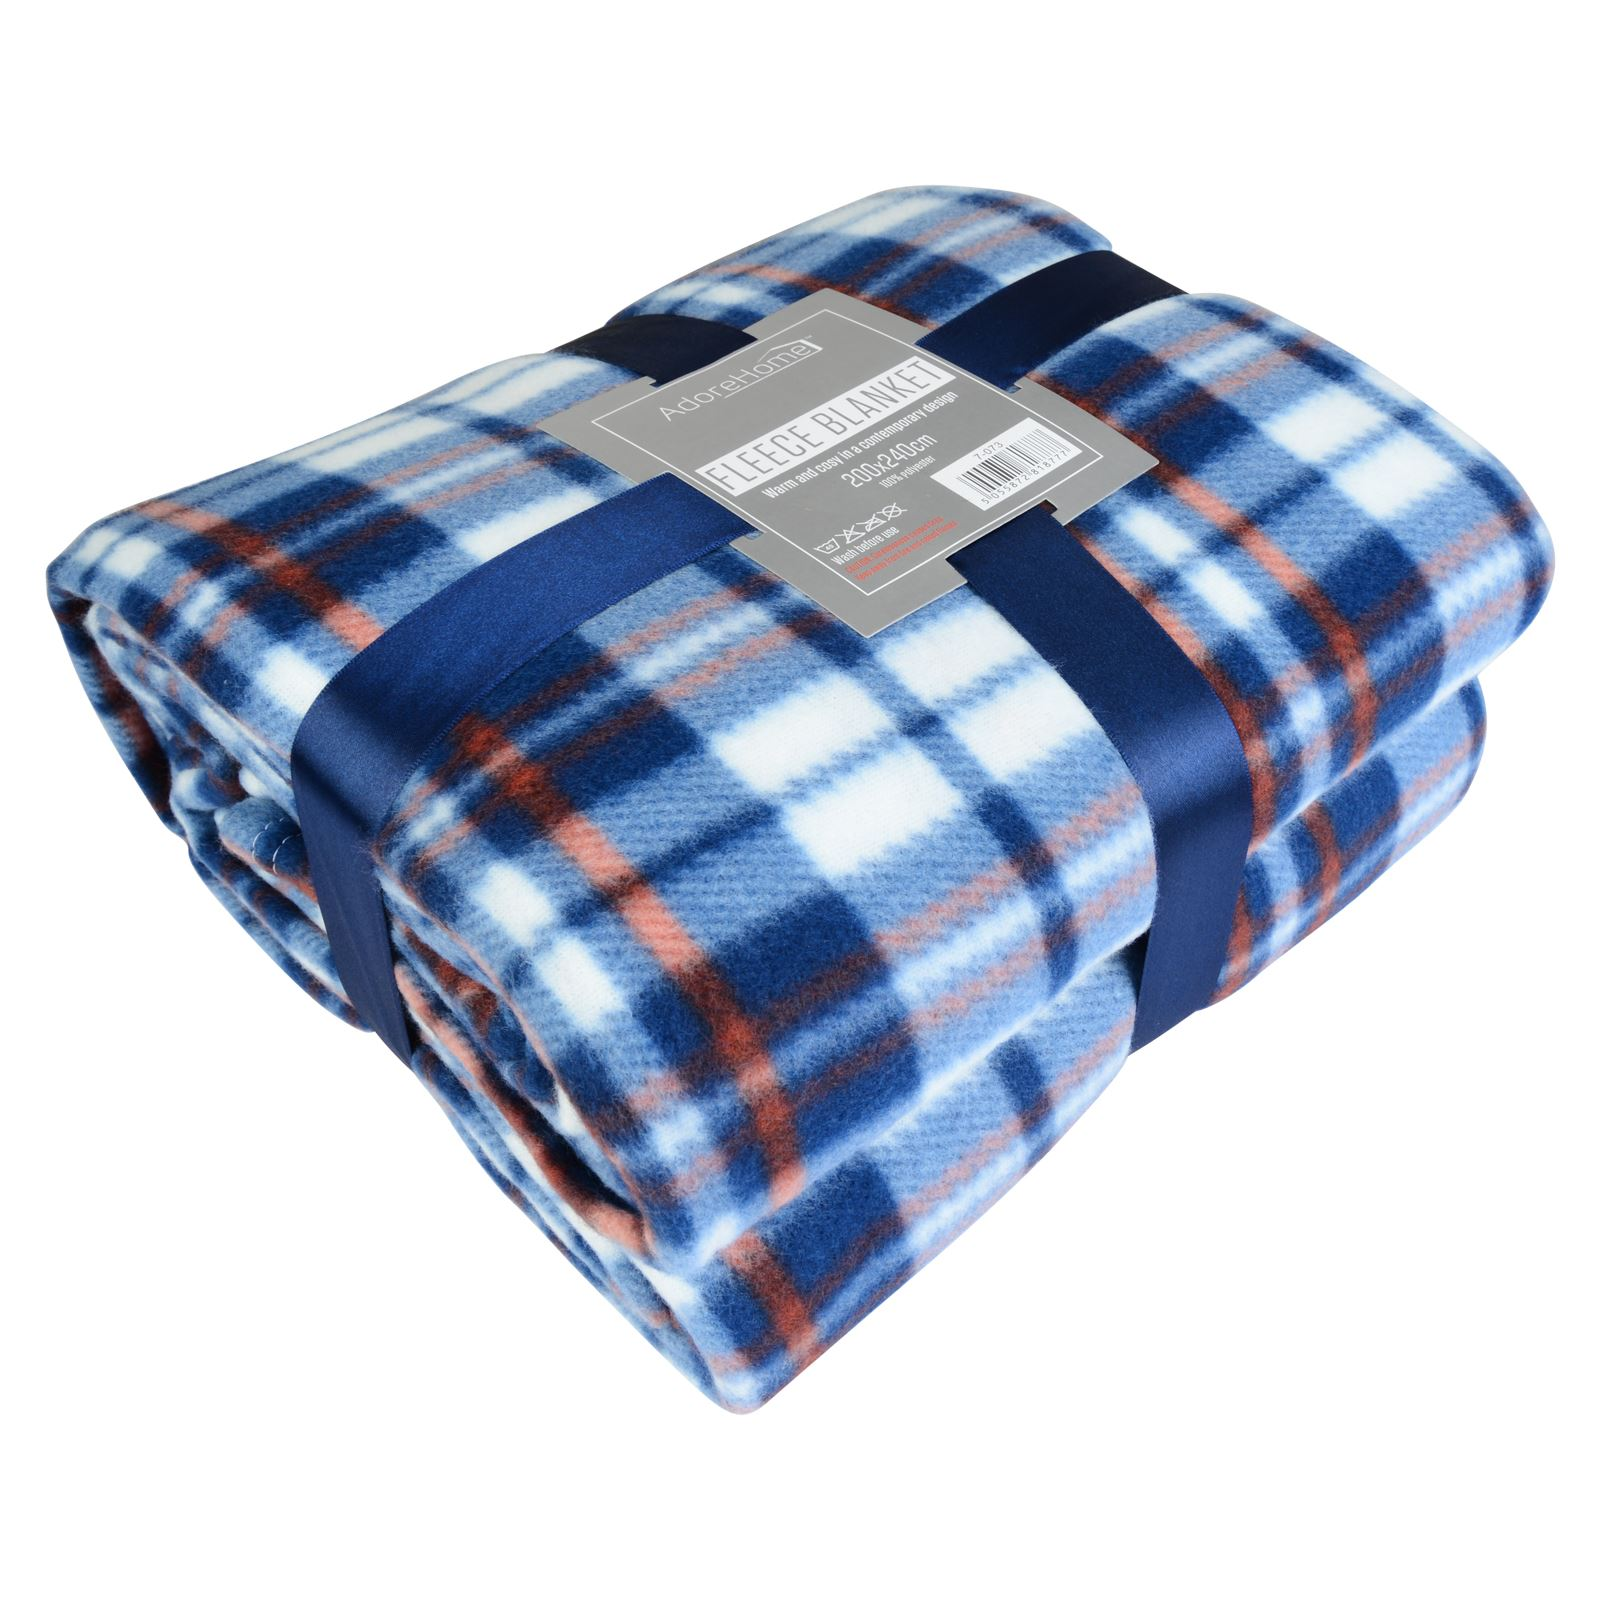 Soft warm 200x240cm king size tartan check sofa throw bed for Blankets king size bed